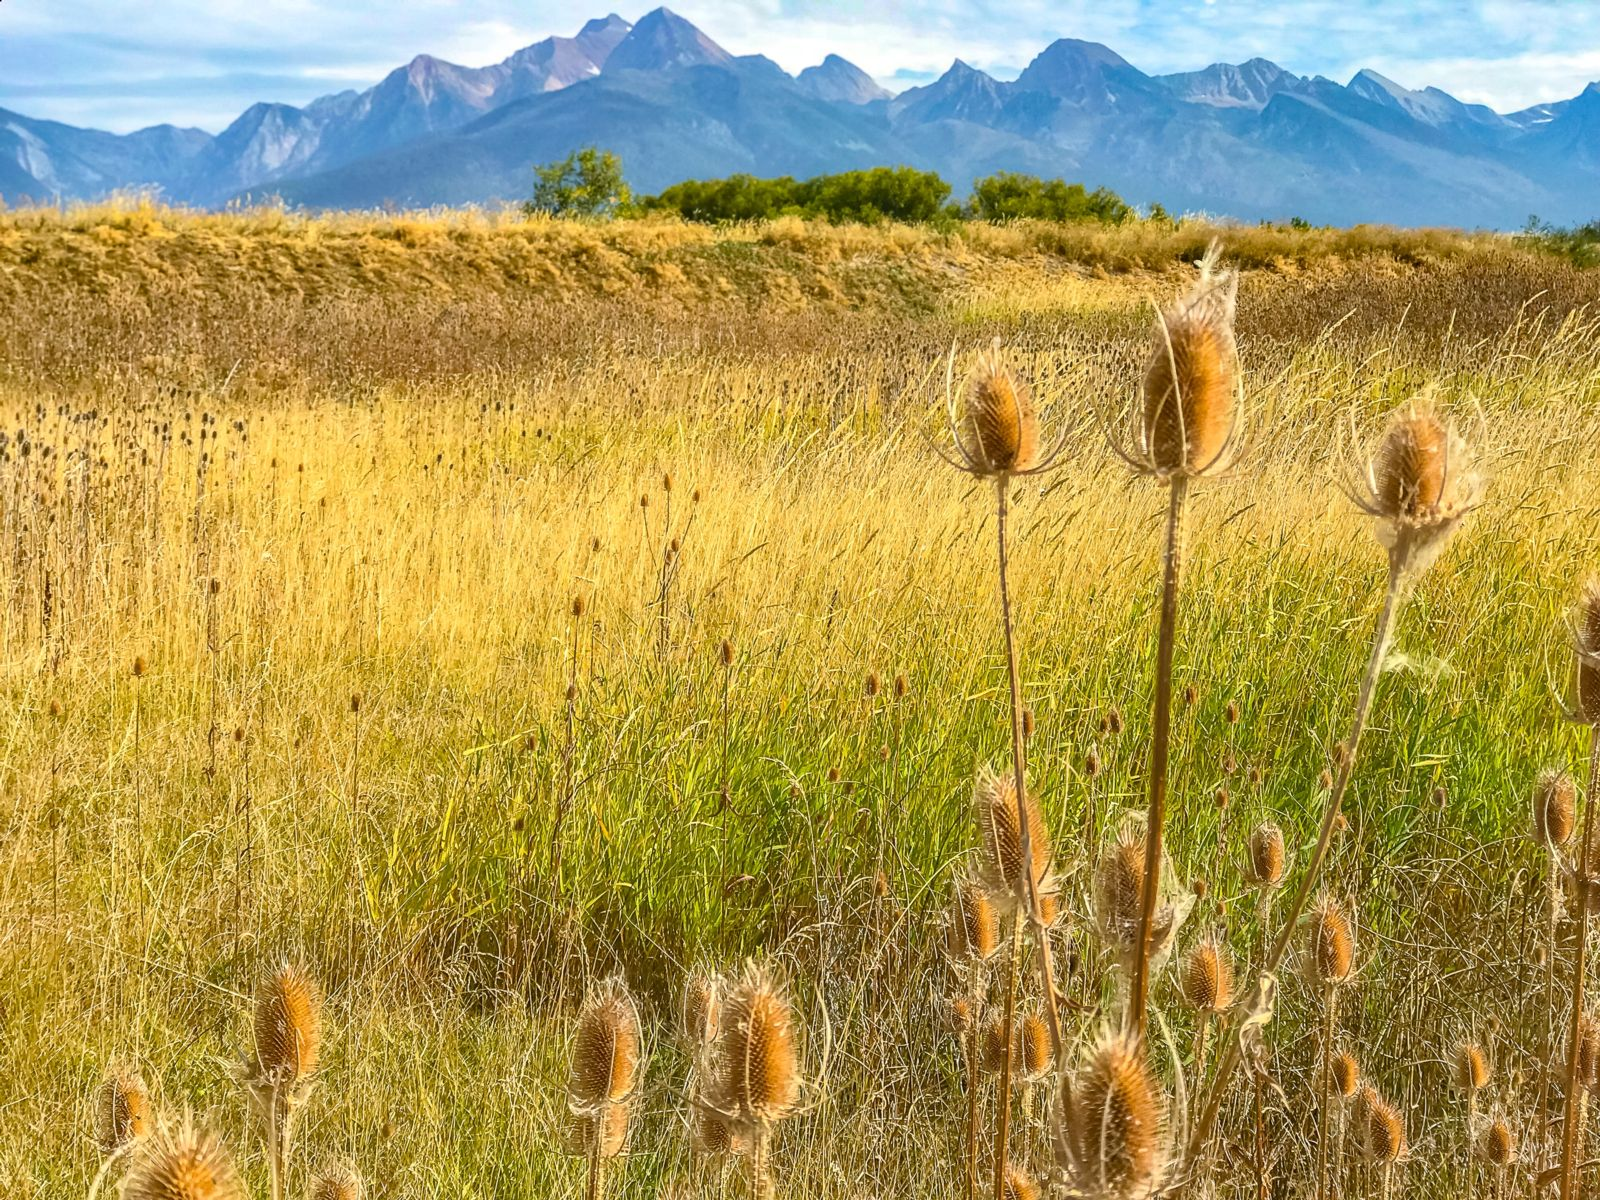 The Mission Mountains provide the backdrop at Ninepipe National Wildlife Refuge. Photo © Carter G. Walker.